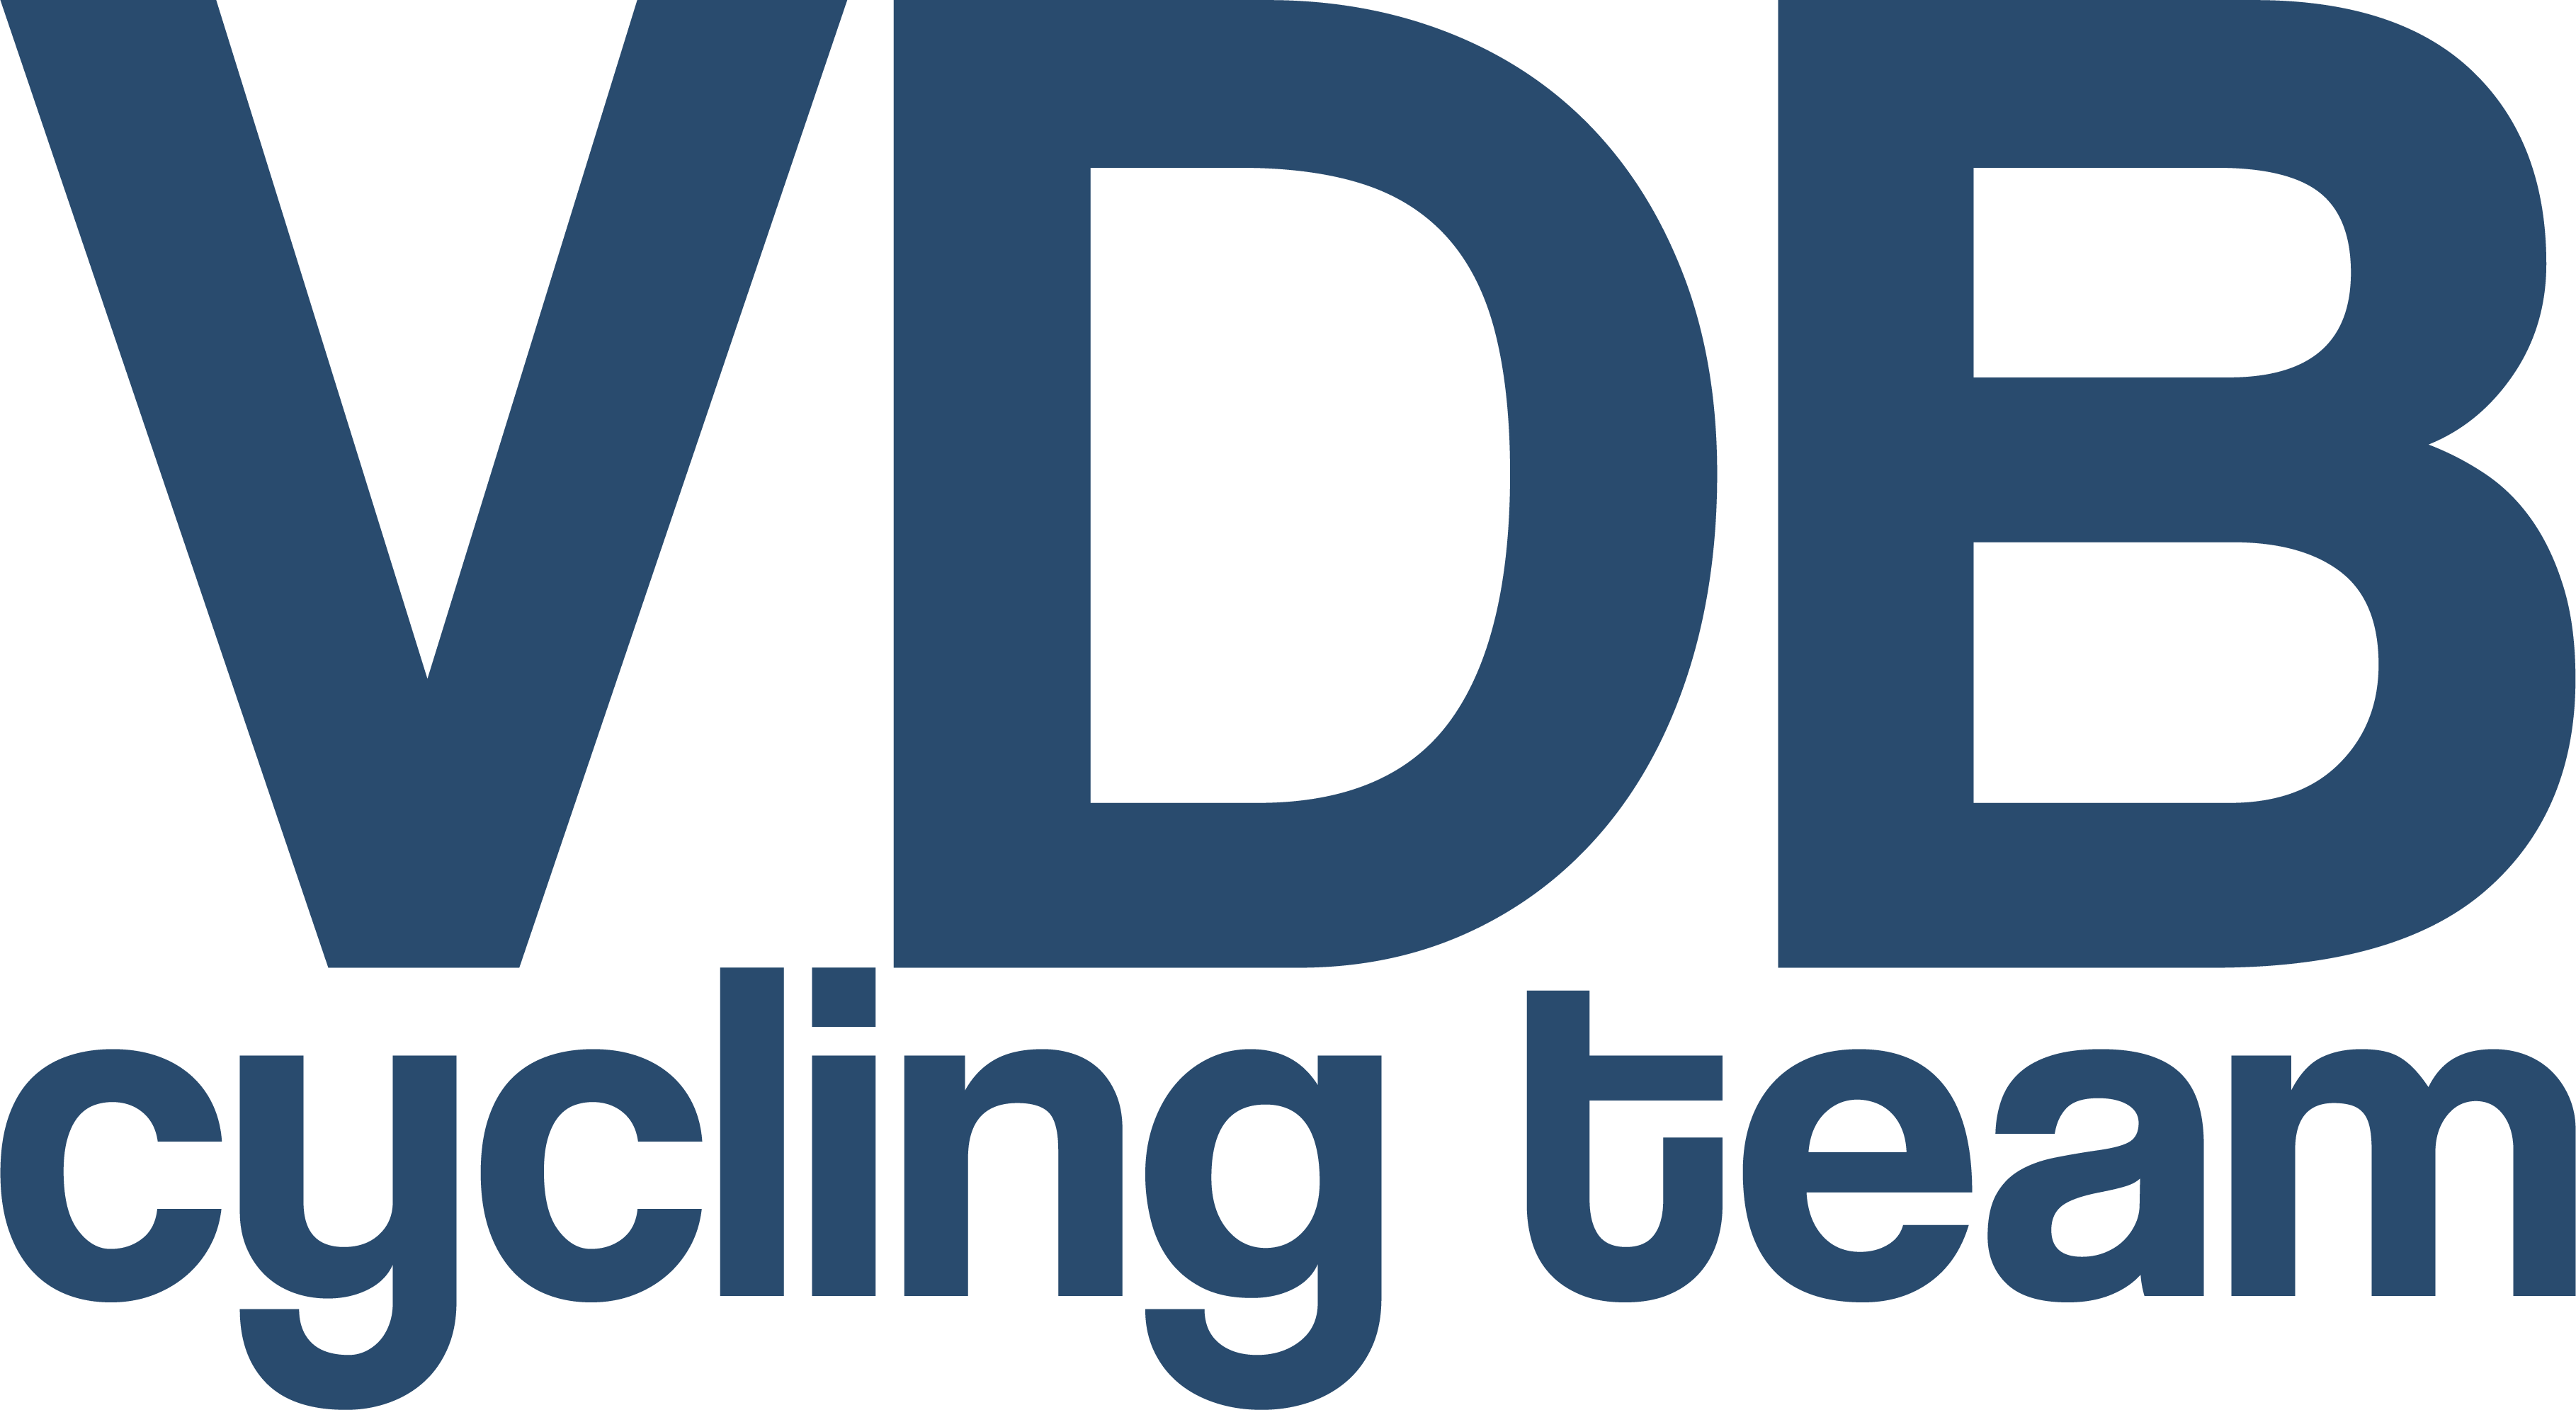 VDB Cycling Team